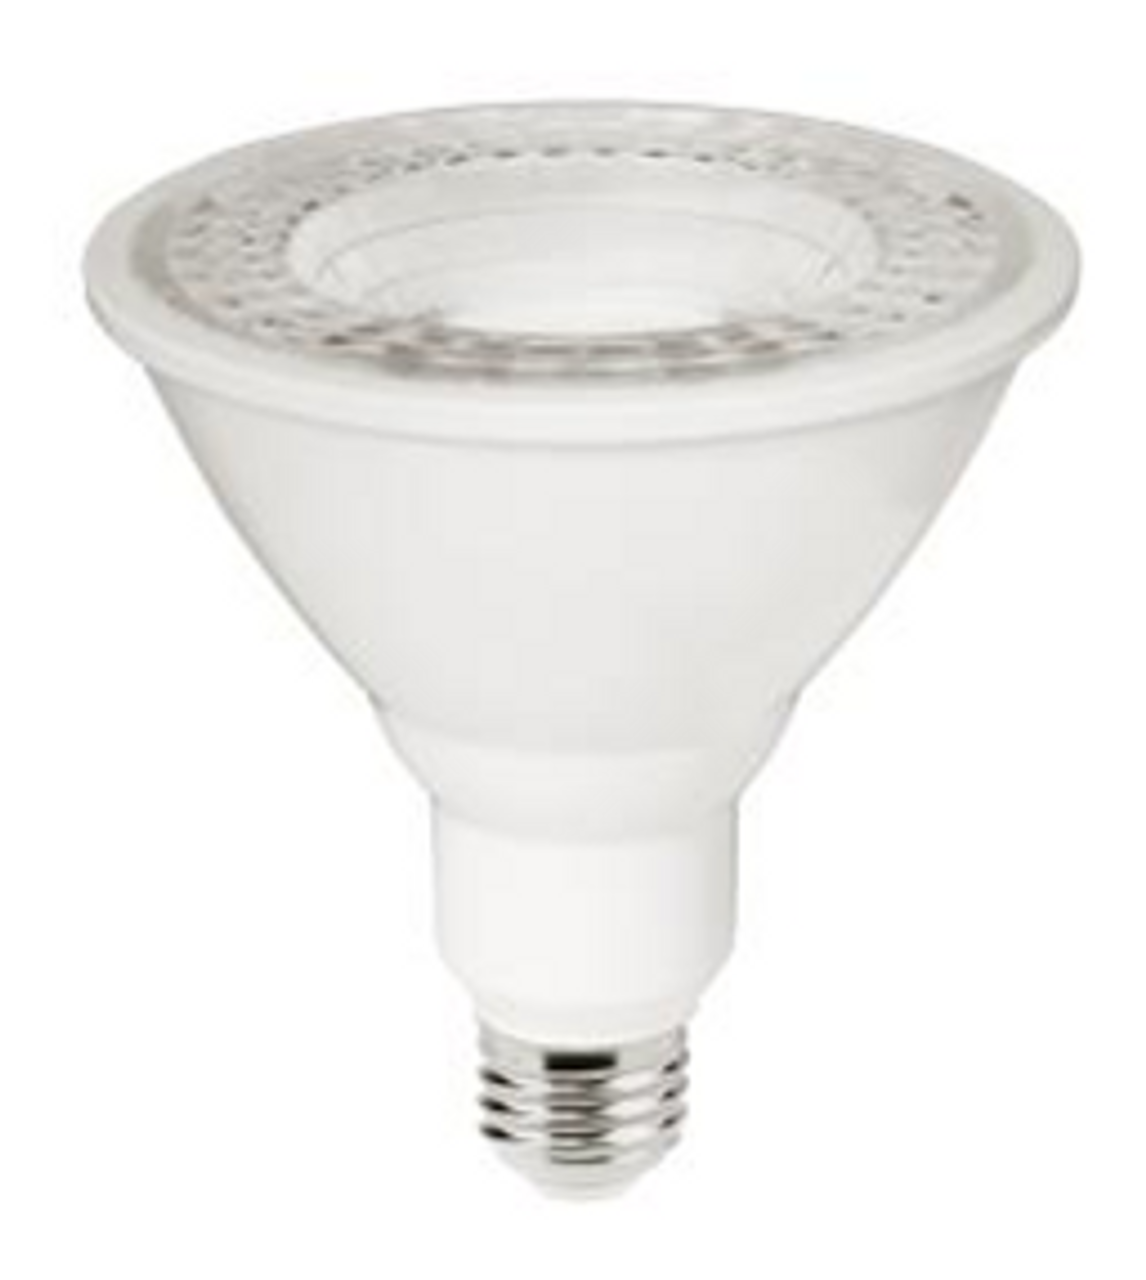 Maxlite 11p30wlnd40fl 11 Watt Par30 Dimmable Led Bulb My Lighting Solutions